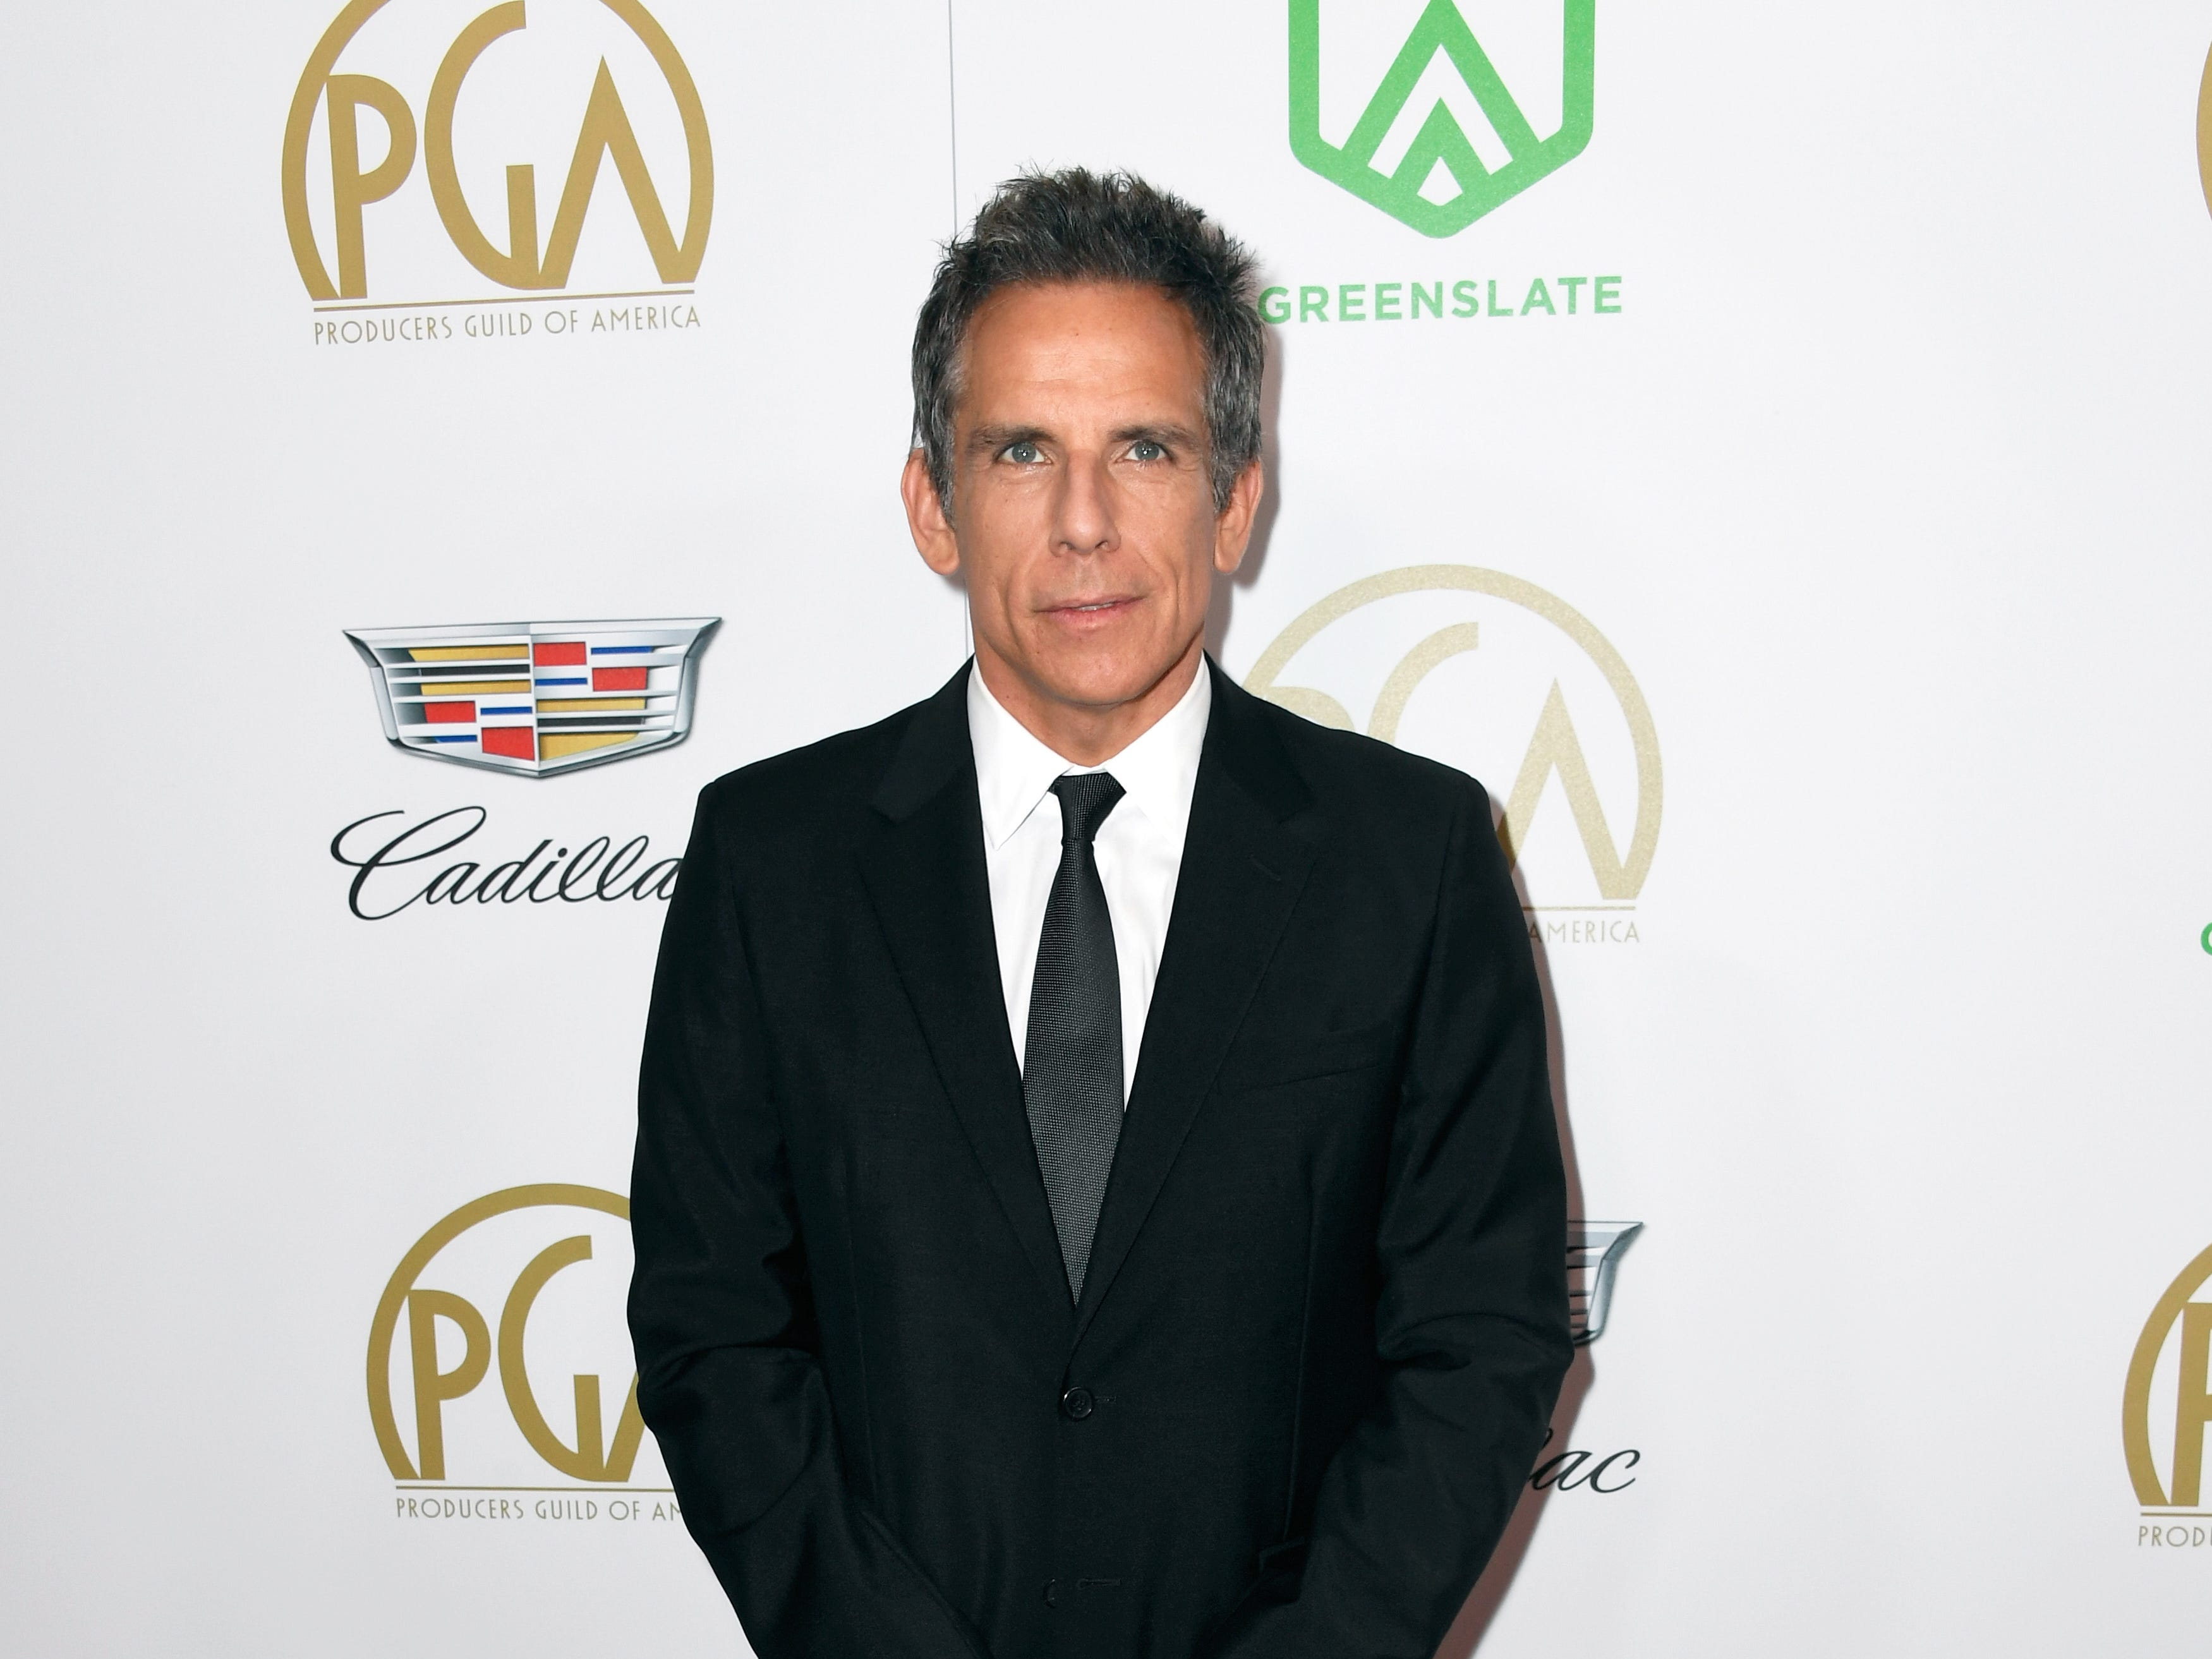 BEVERLY HILLS, CA - JANUARY 19:  Ben Stiller attends the 30th annual Producers Guild Awards at The Beverly Hilton Hotel on January 19, 2019 in Beverly Hills, California.  (Photo by Frazer Harrison/Getty Images) ORG XMIT: 775277375 ORIG FILE ID: 1085405368